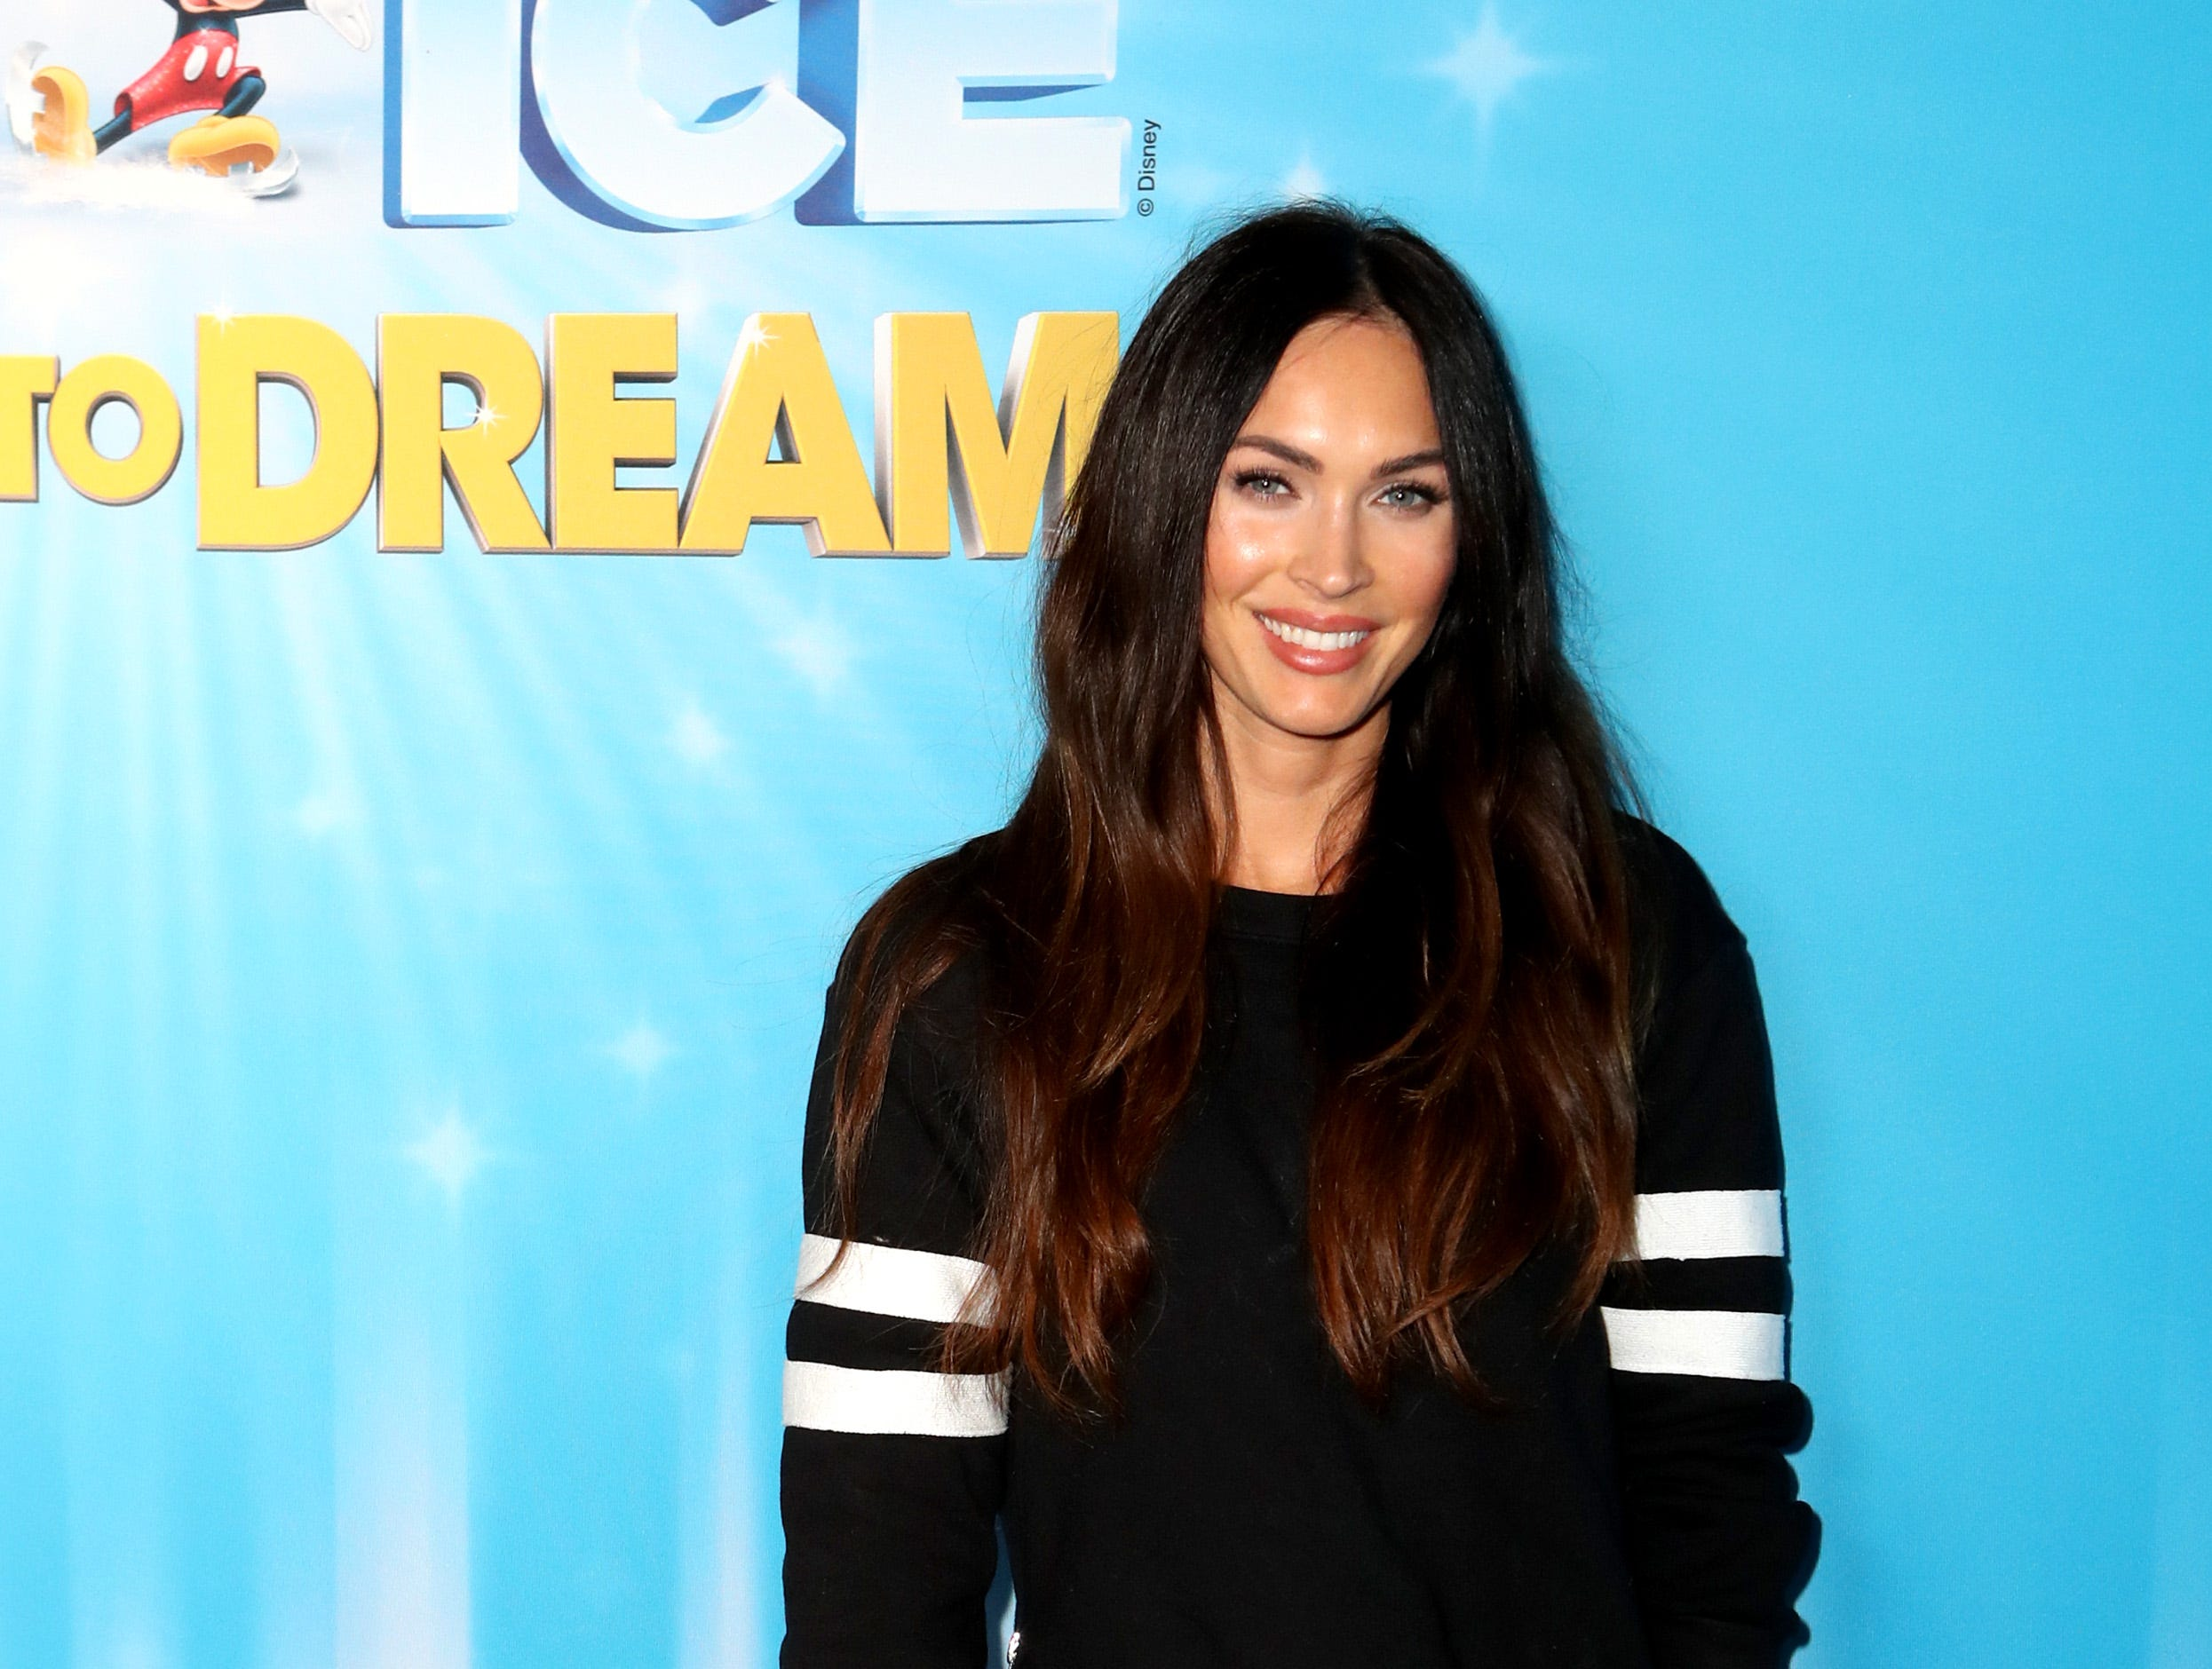 LOS ANGELES, CALIFORNIA - DECEMBER 14: Megan Fox attends  Disney On Ice Presents Dare to Dream Celebrity Skating Party at Staples Center on December 14, 2018 in Los Angeles, California. (Photo by Ari Perilstein/Getty Images for Feld Entertainment, Inc.) ORG XMIT: 775270025 ORIG FILE ID: 1082681932